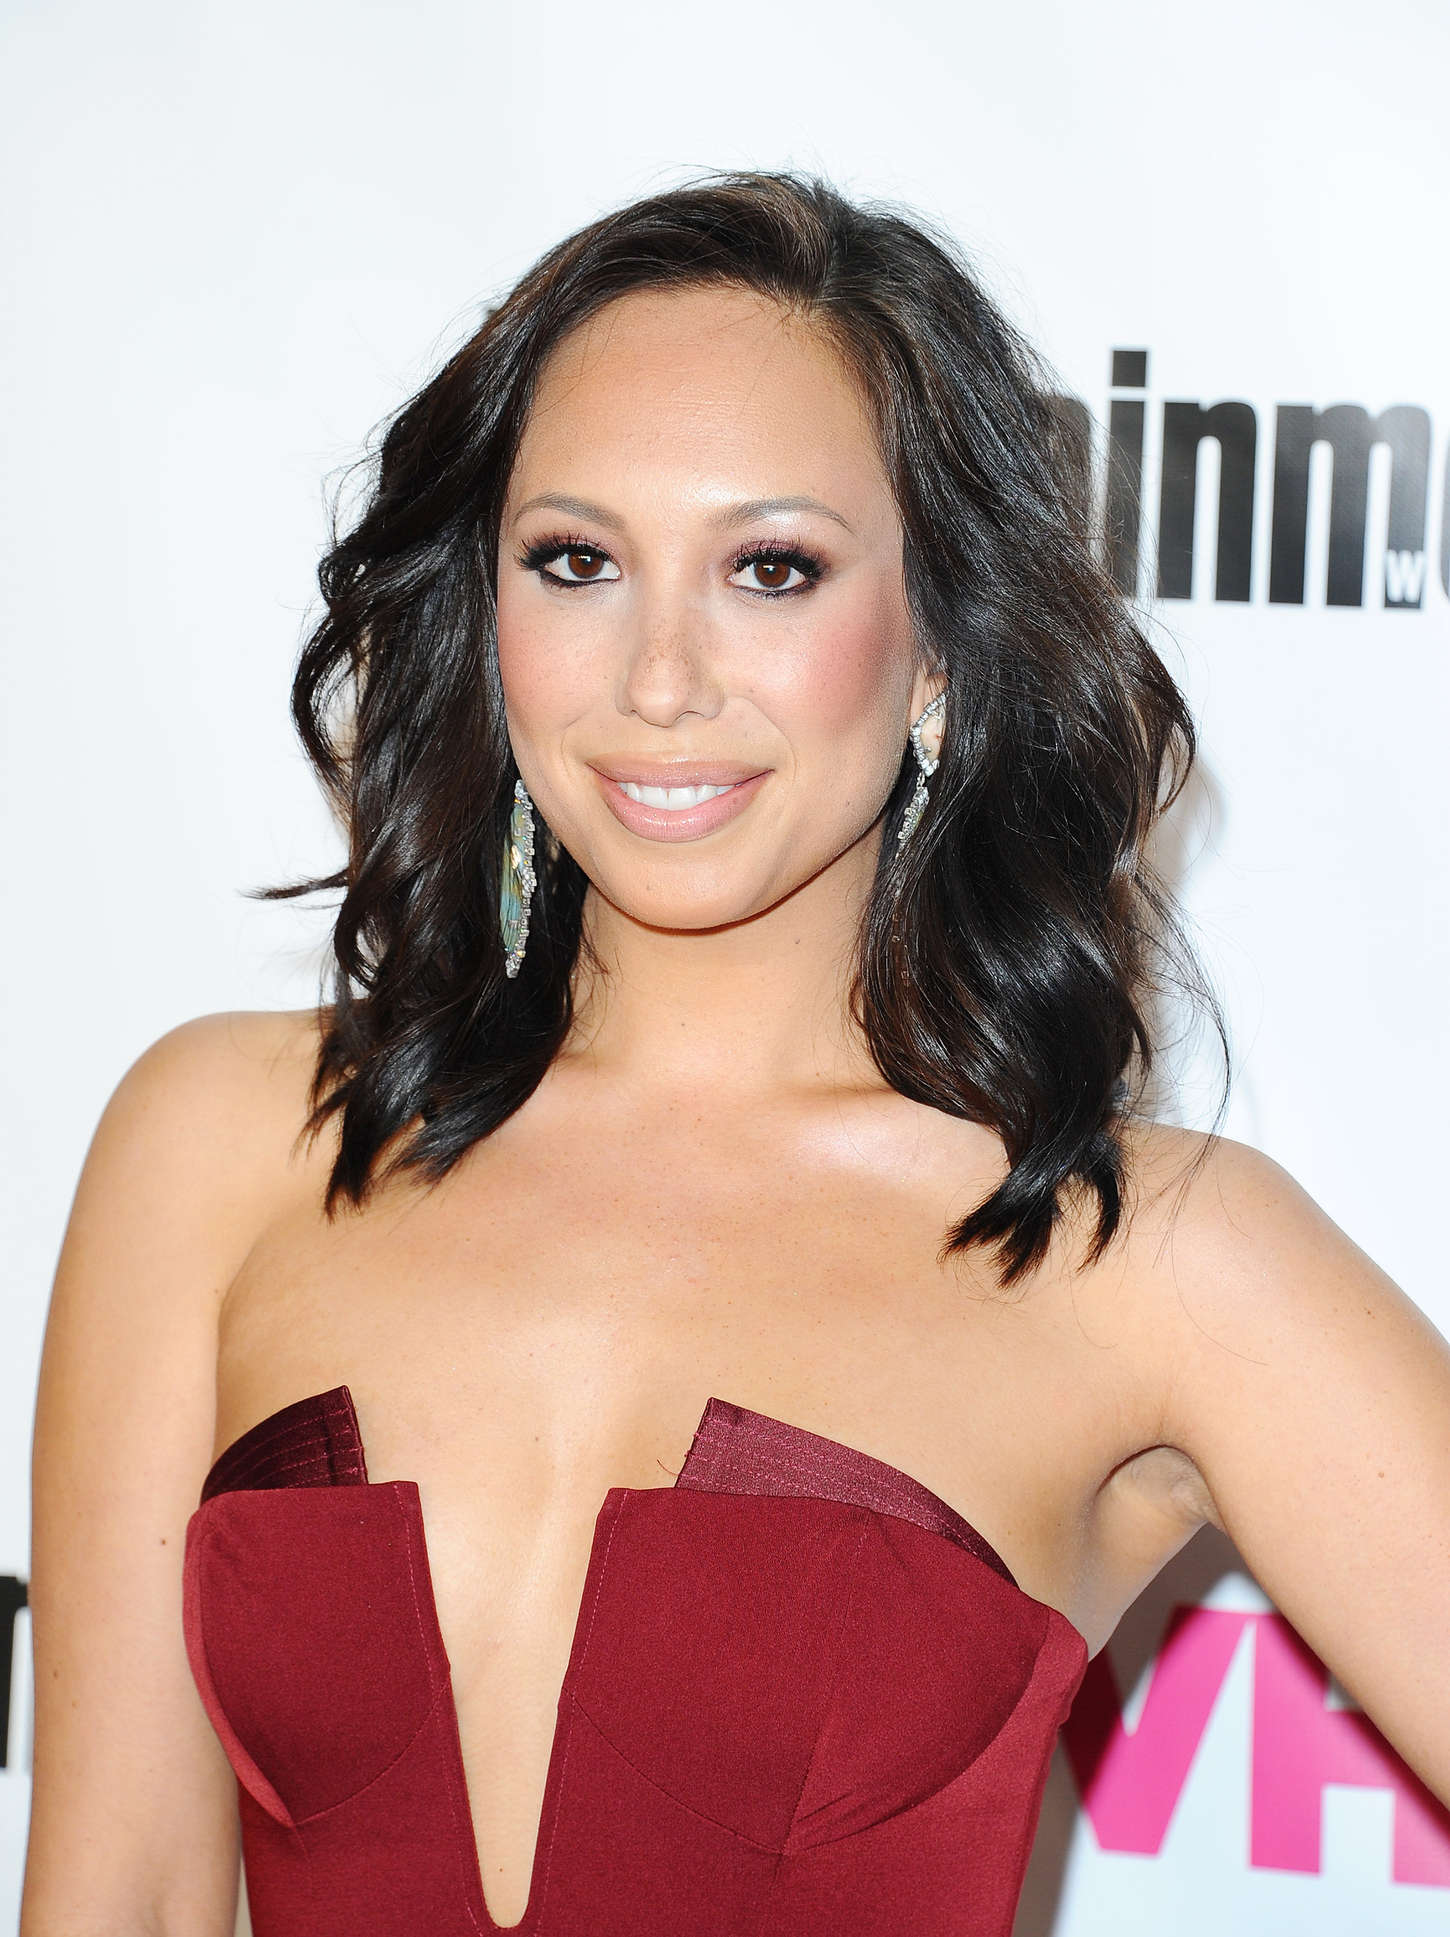 Cheryl Burke VH1 Big in With Entertainment Weekly Awards in Los Angeles